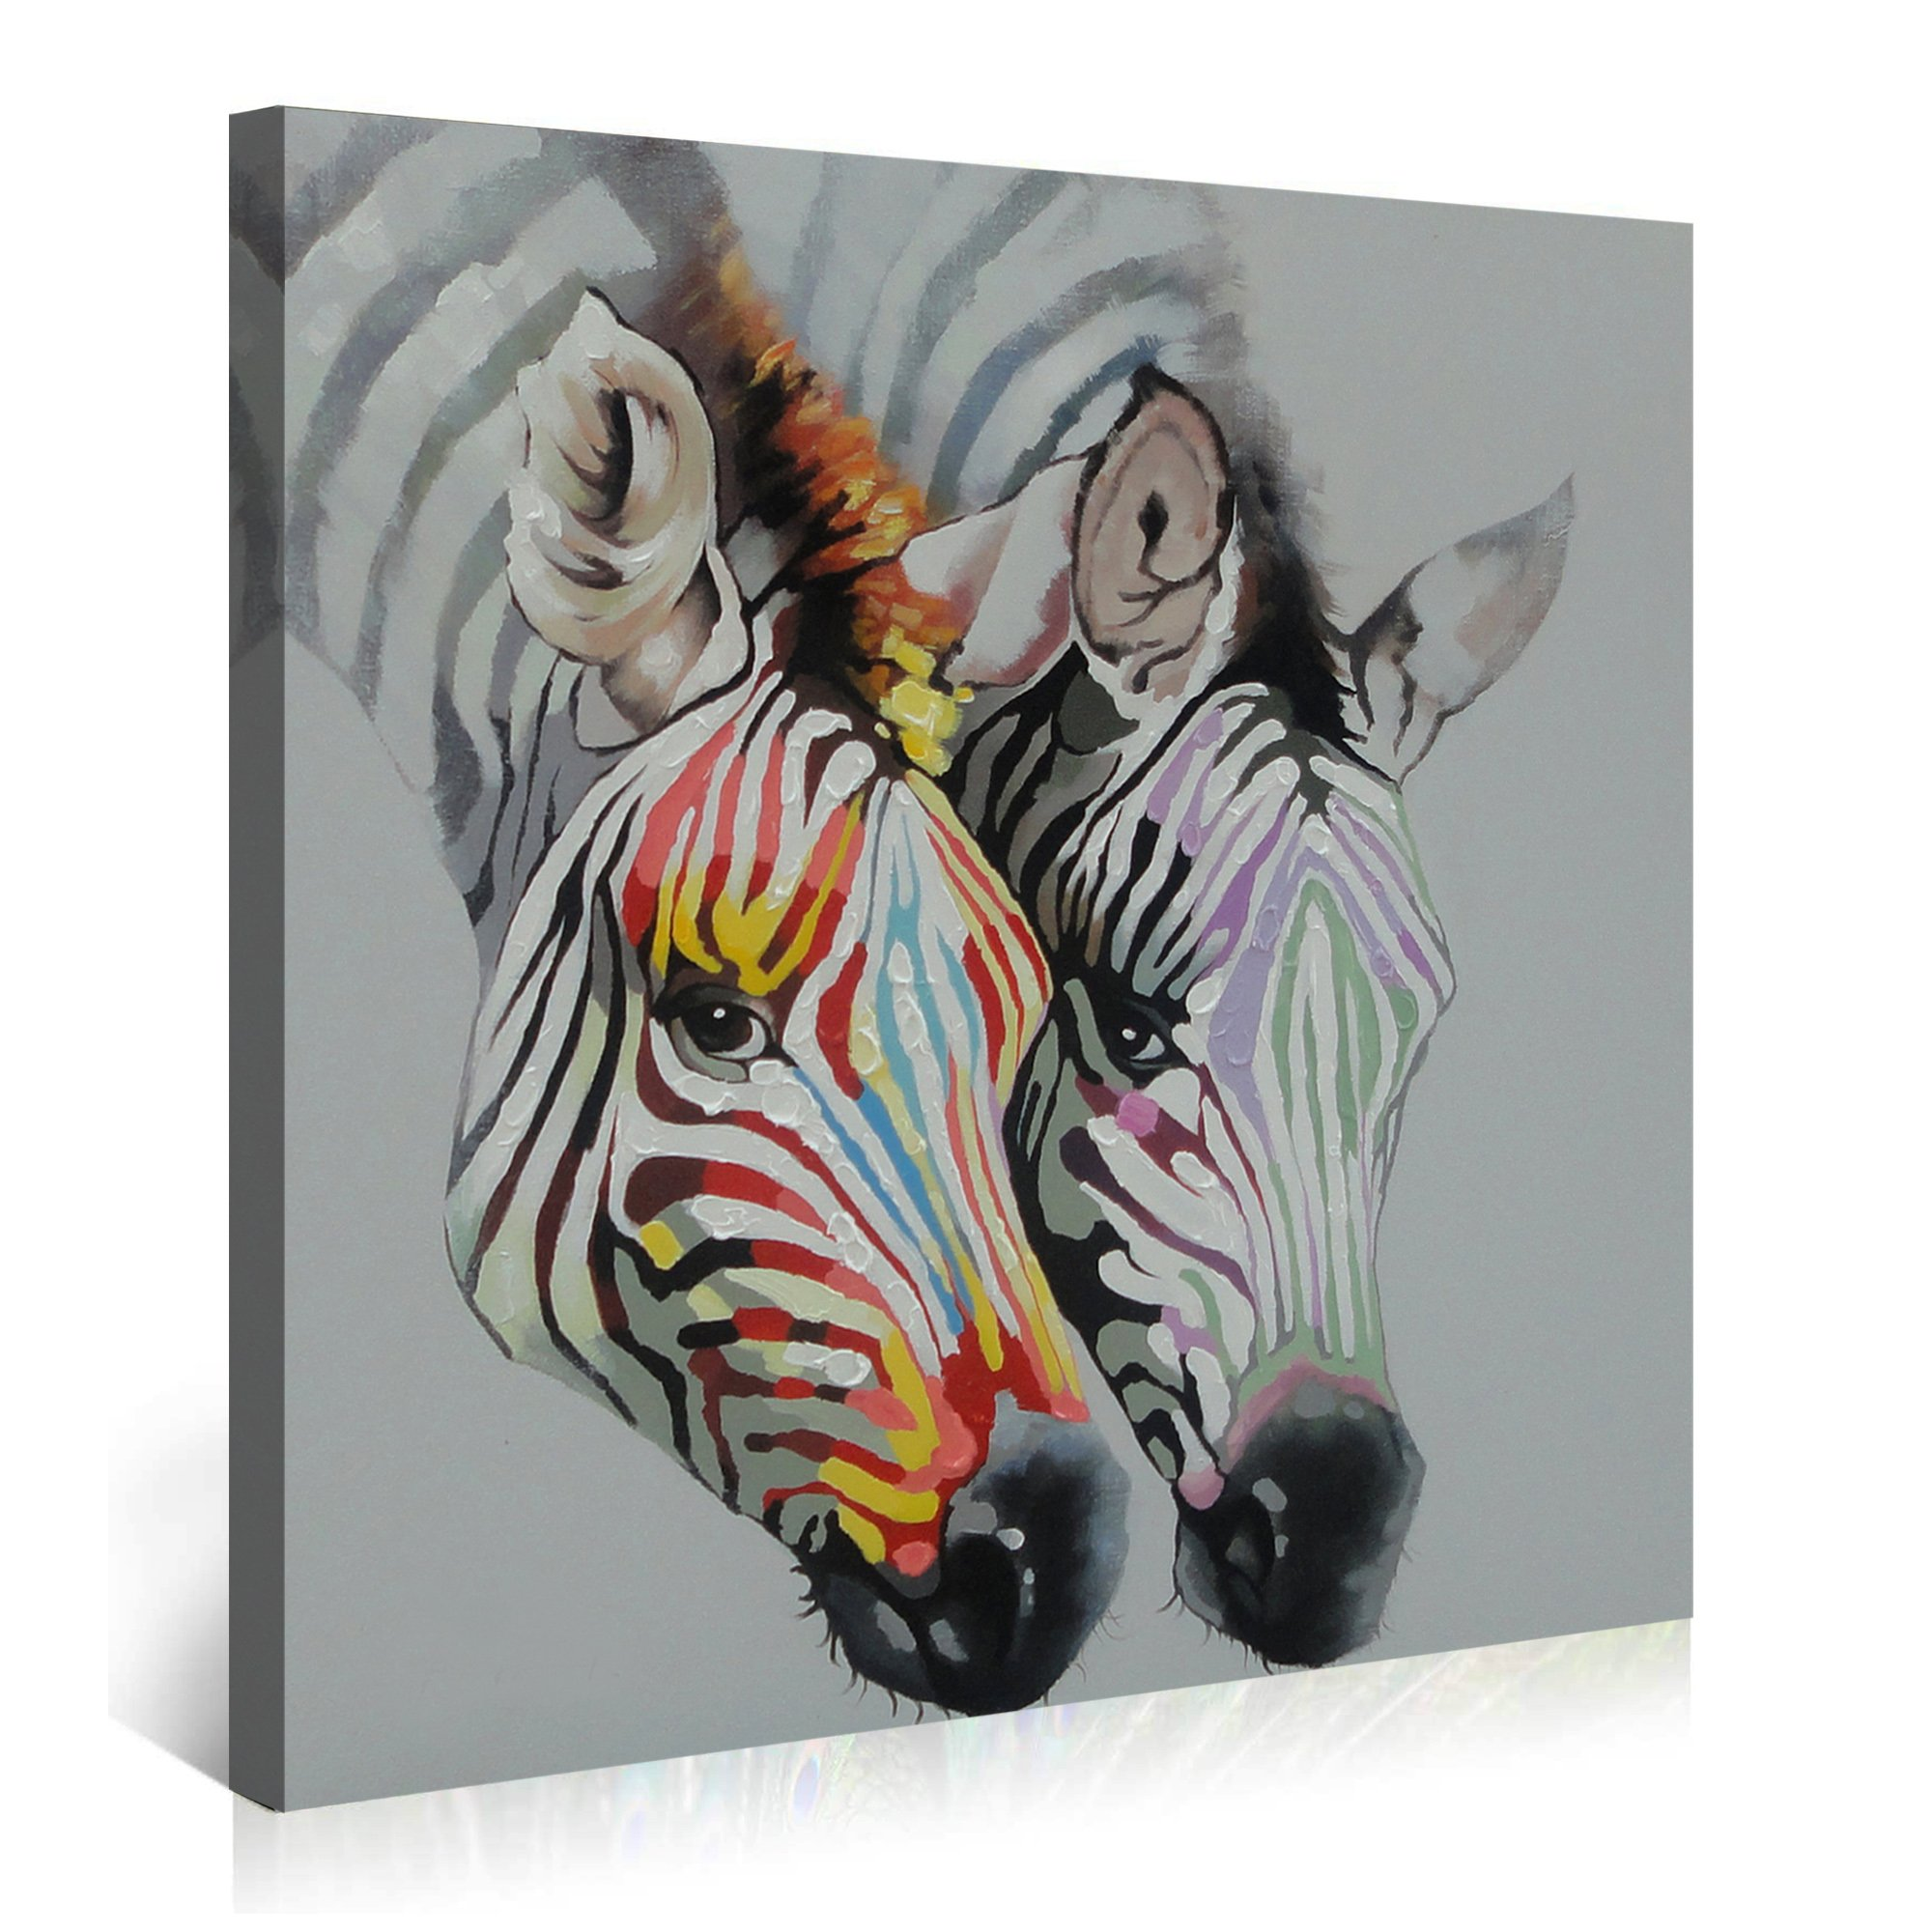 3Hdeko-Zebra Oil Painting on Canvas 30x30inch Gray Animal Artwork Home Decor for Living Room- Ready to hang! by 3Hdeko (Image #6)